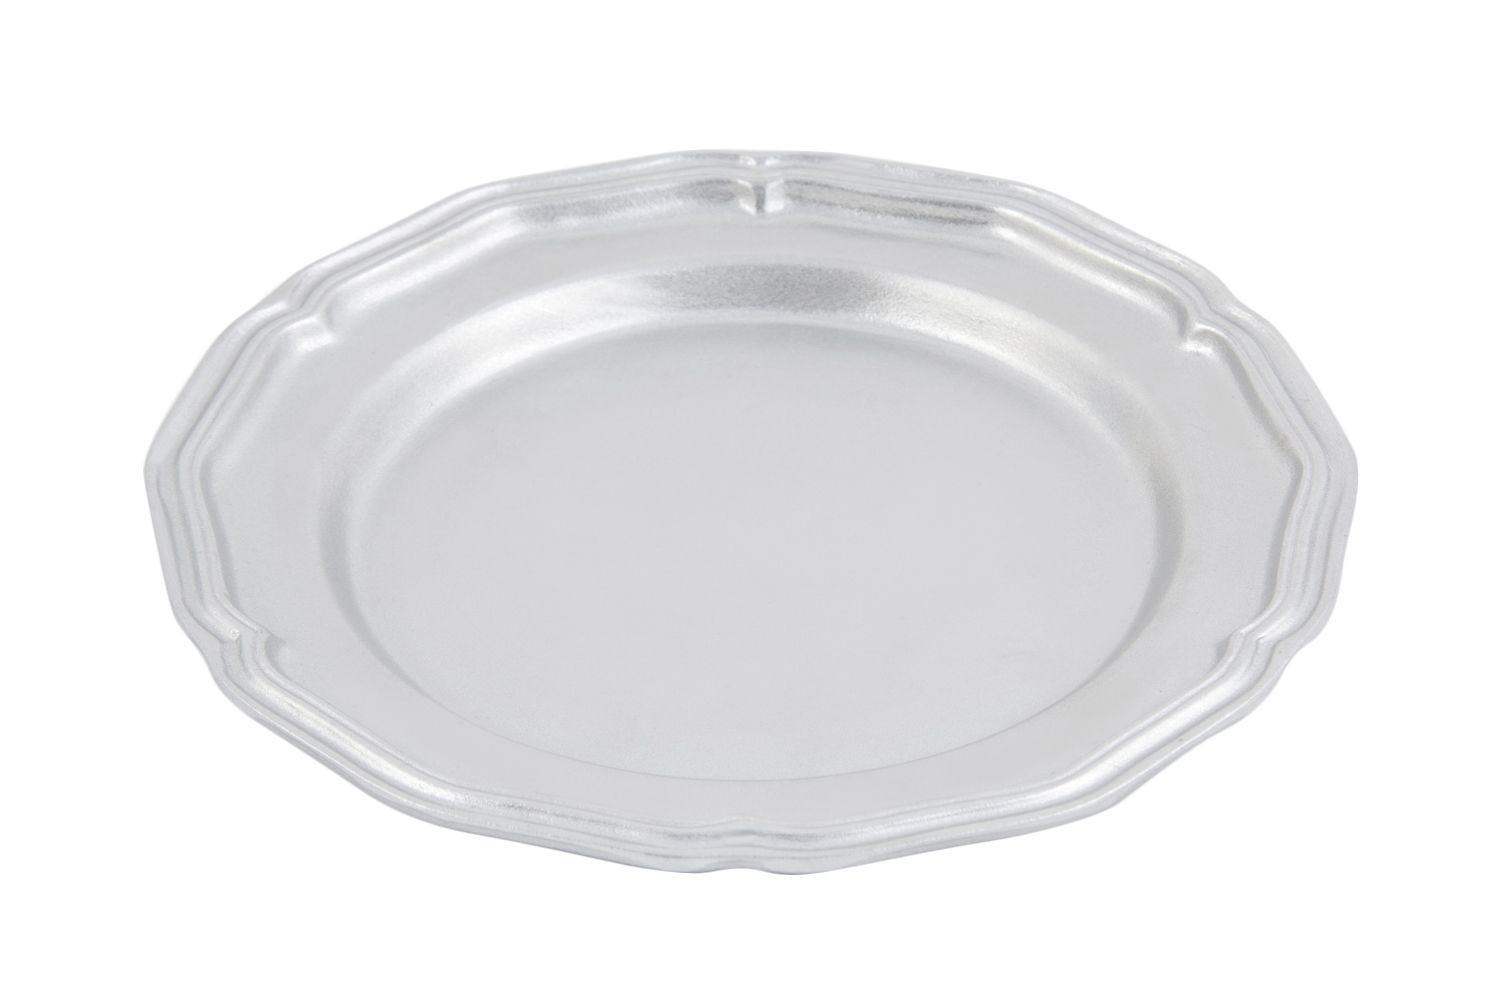 Bon Chef 1034P Queen Anne Dinner Plate Pewter Glo 10 1/2\  Dia  sc 1 st  LionsDeal & Bon Chef 1034P Queen Anne Dinner Plate Pewter Glo 10 1/2\